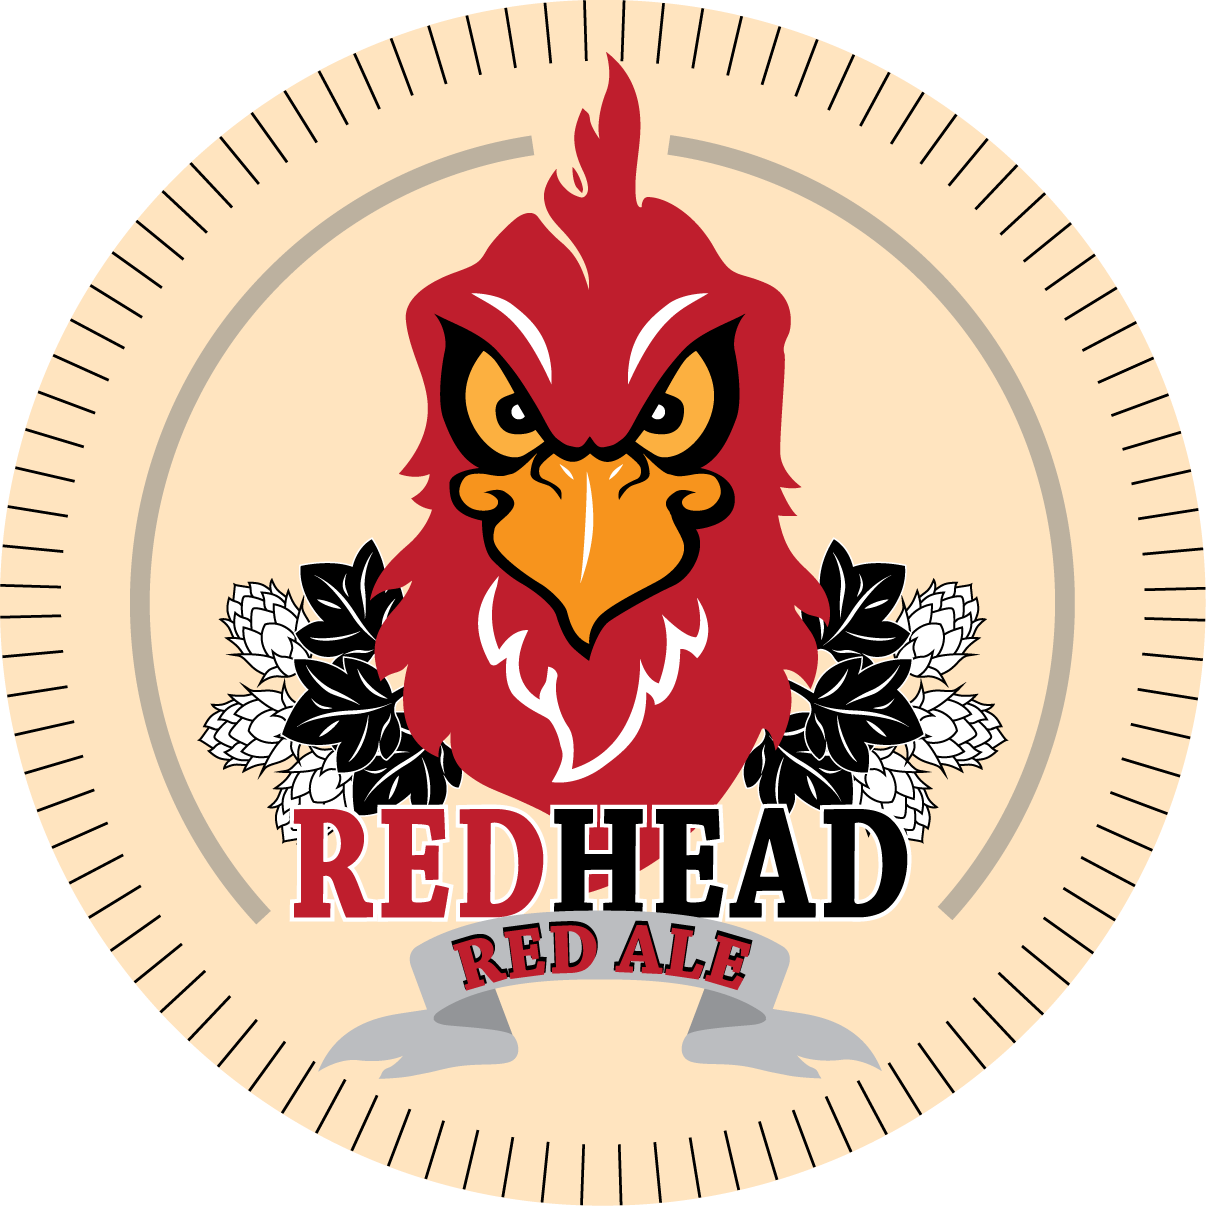 Animal army brewery red head ale logo